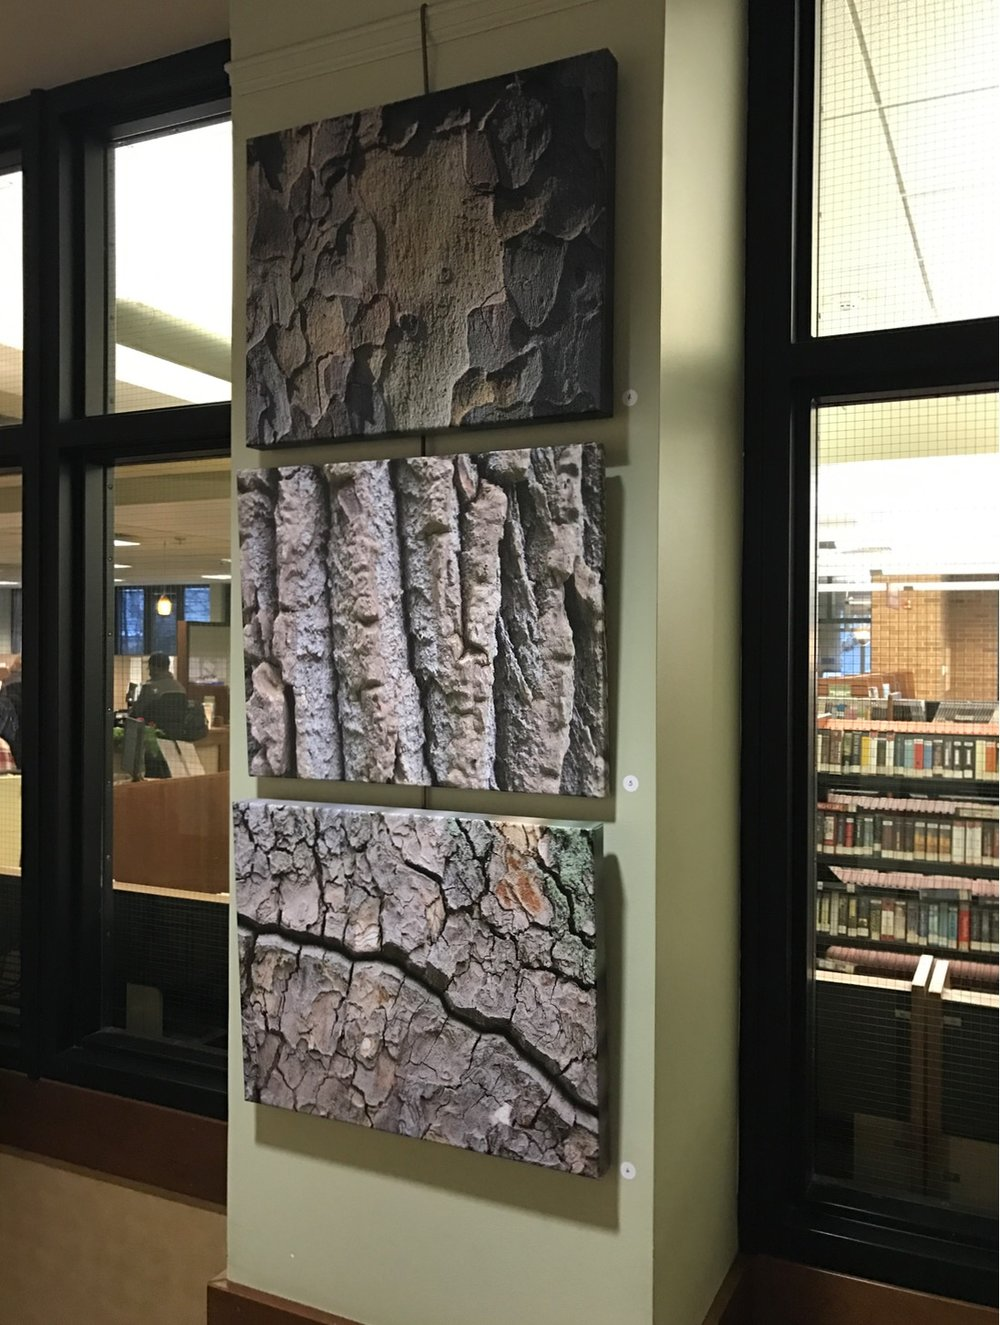 A snapshot of one of the panels in the Saratoga Springs (NY) Library.